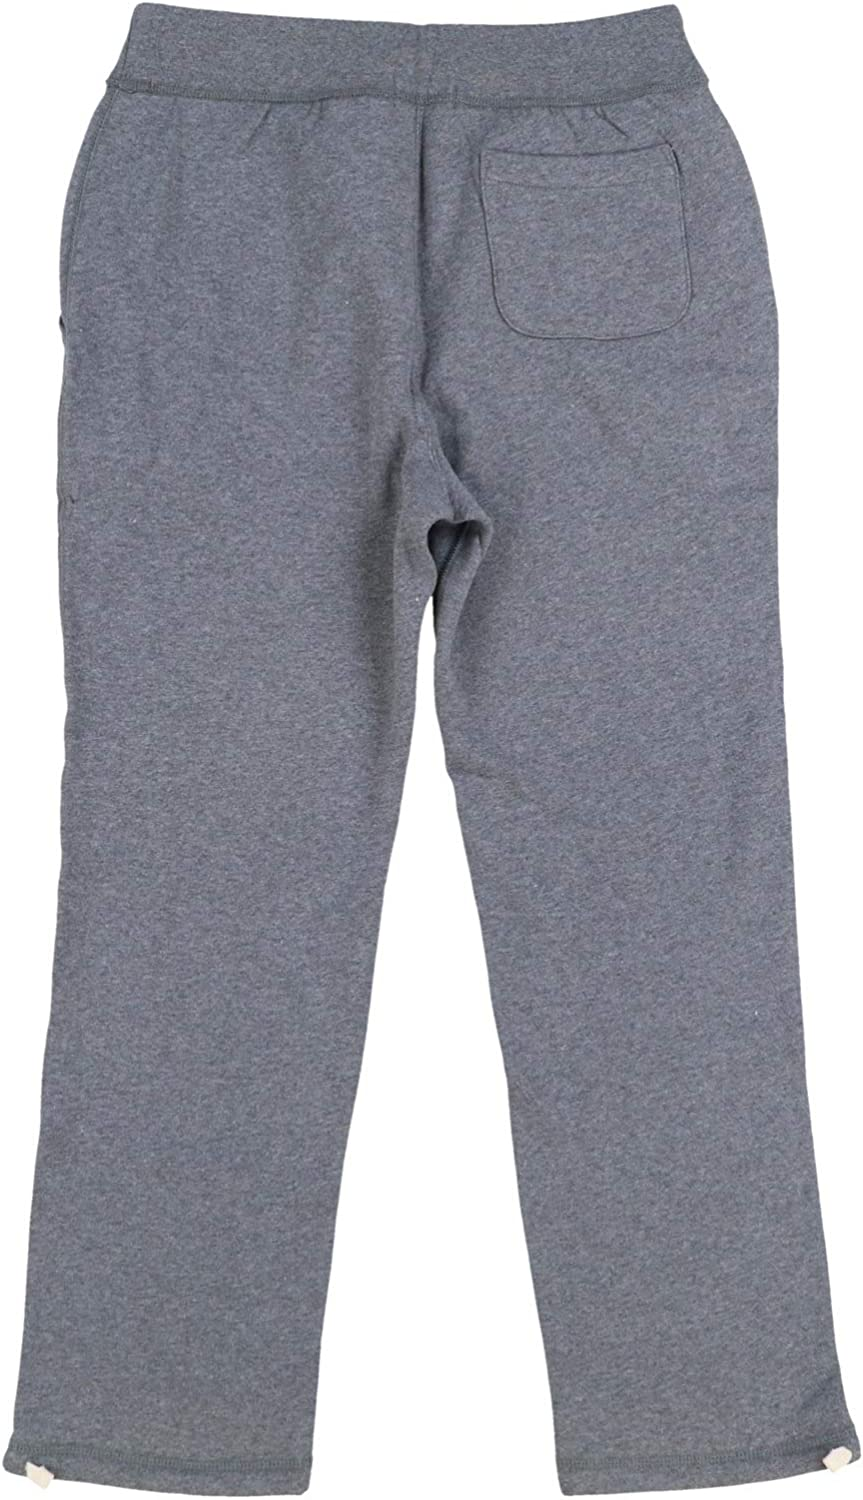 Cruise Navy,Small Polo Ralph Lauren Mens Fleece Athletic Pants